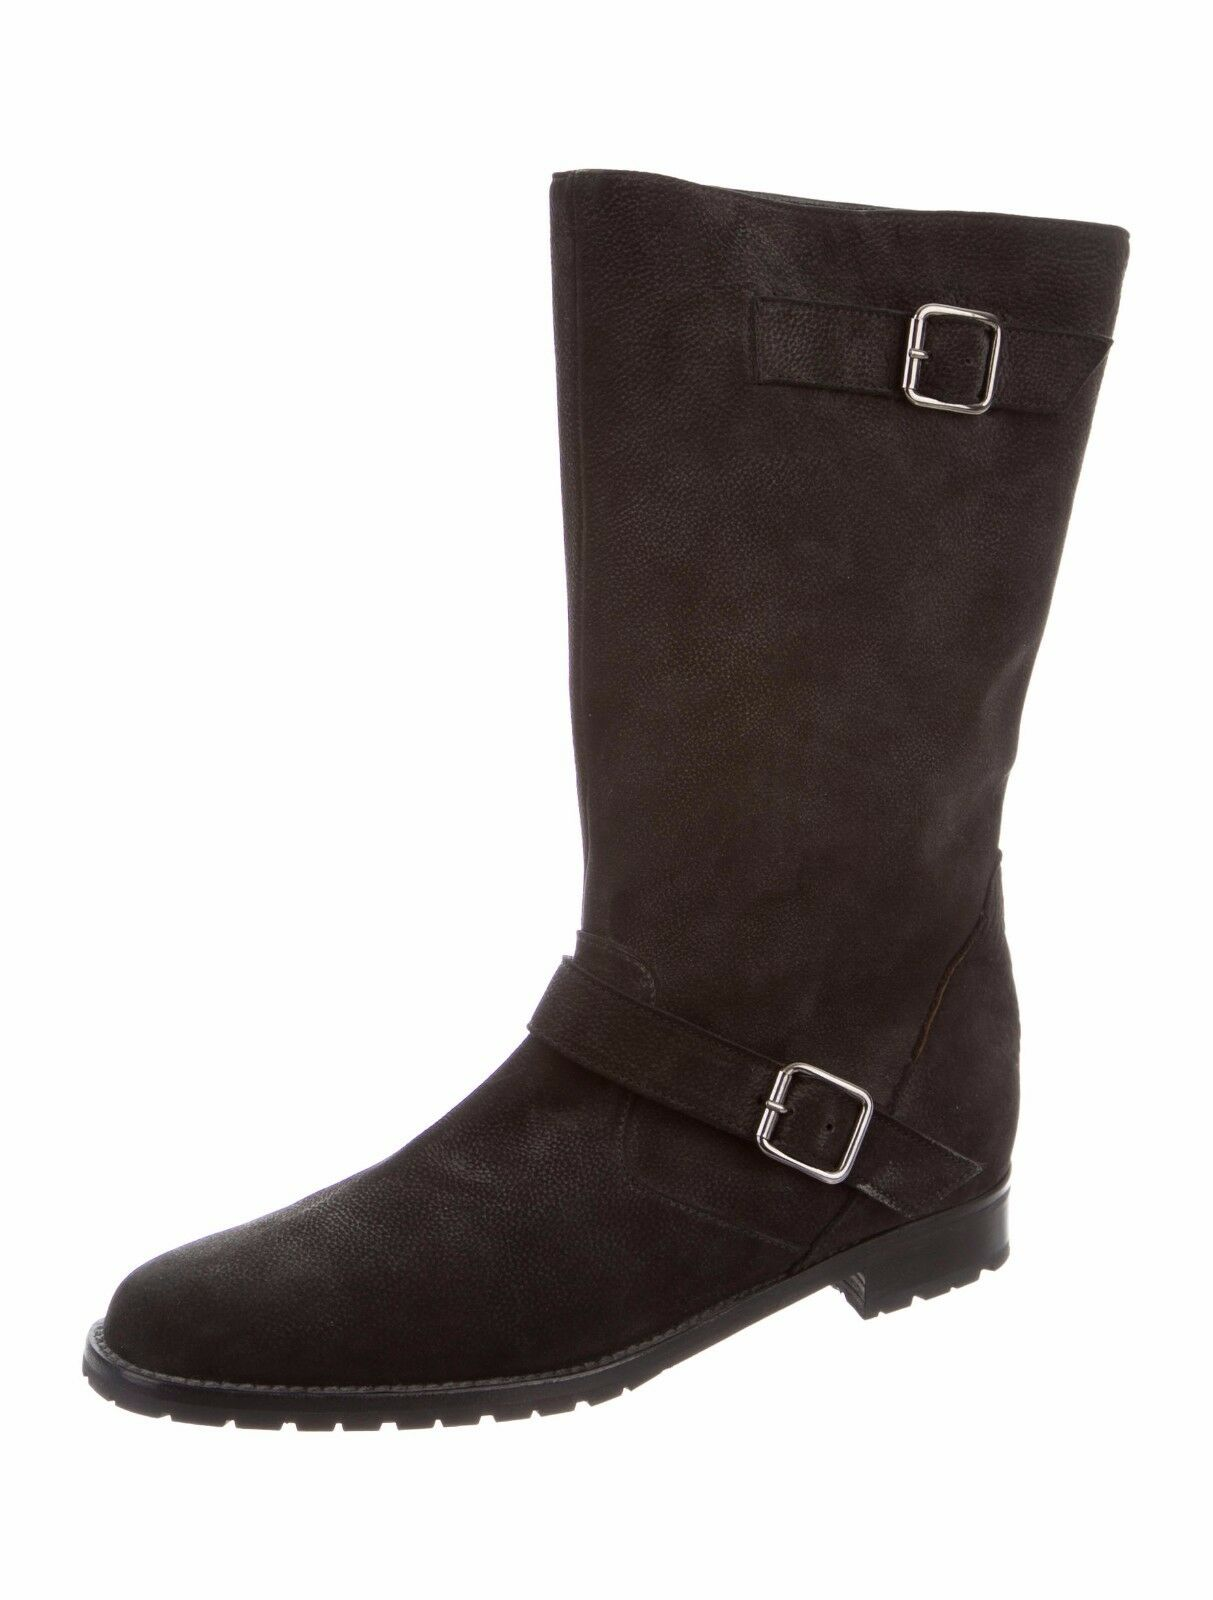 $1495 New MANOLO BLAHNIK Black Nubuck Leather Motto Flat CAMPO BOOTS Shoes 40